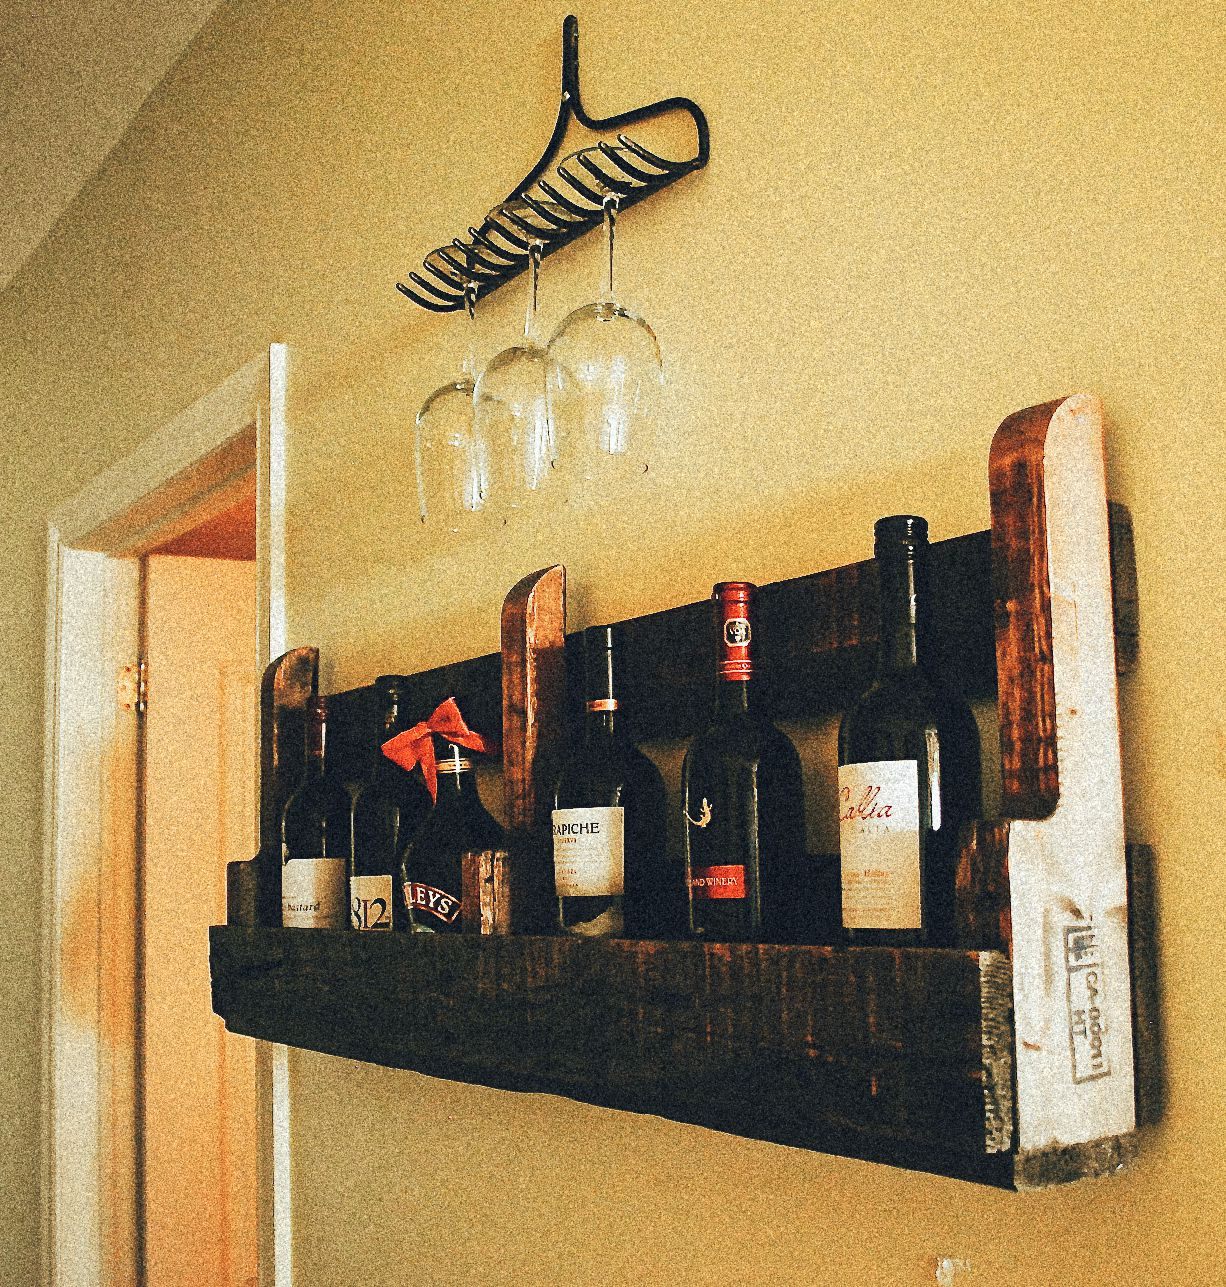 Rake Wine Glass Holders (1)